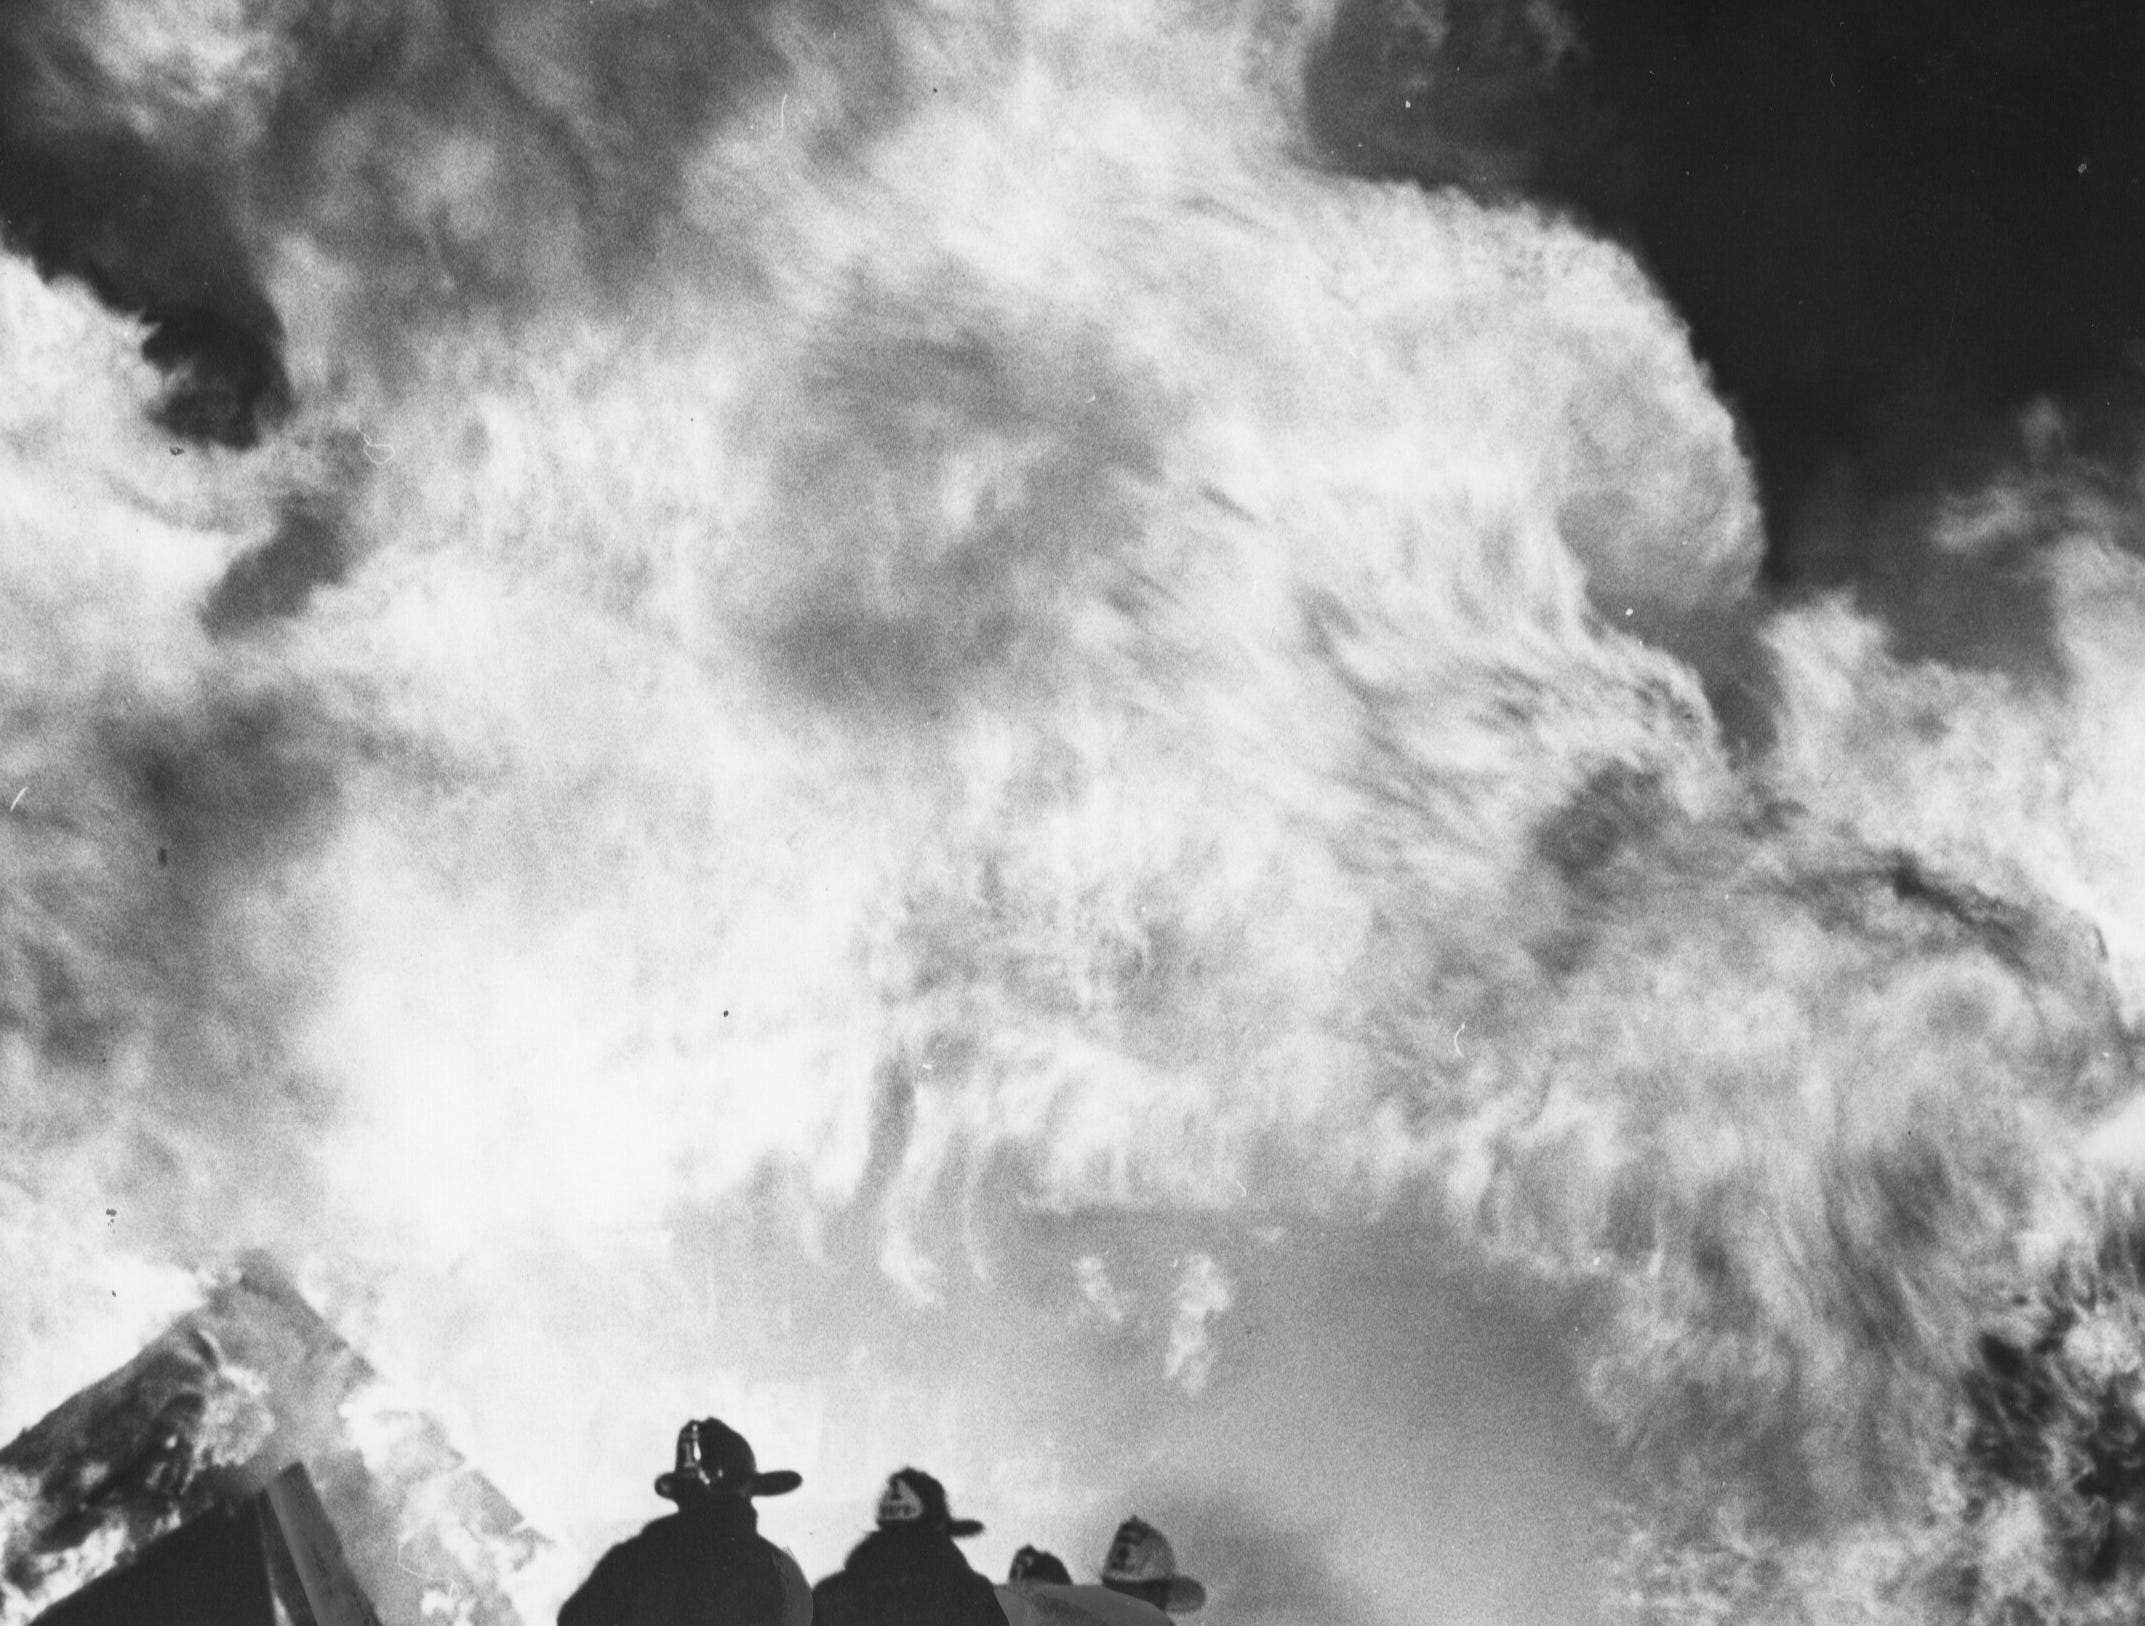 Baptism of fire was given new members of the Lake Dreamland Volunteer Fire Department with the deliberate burning of an old barn on Camp Ground Road.